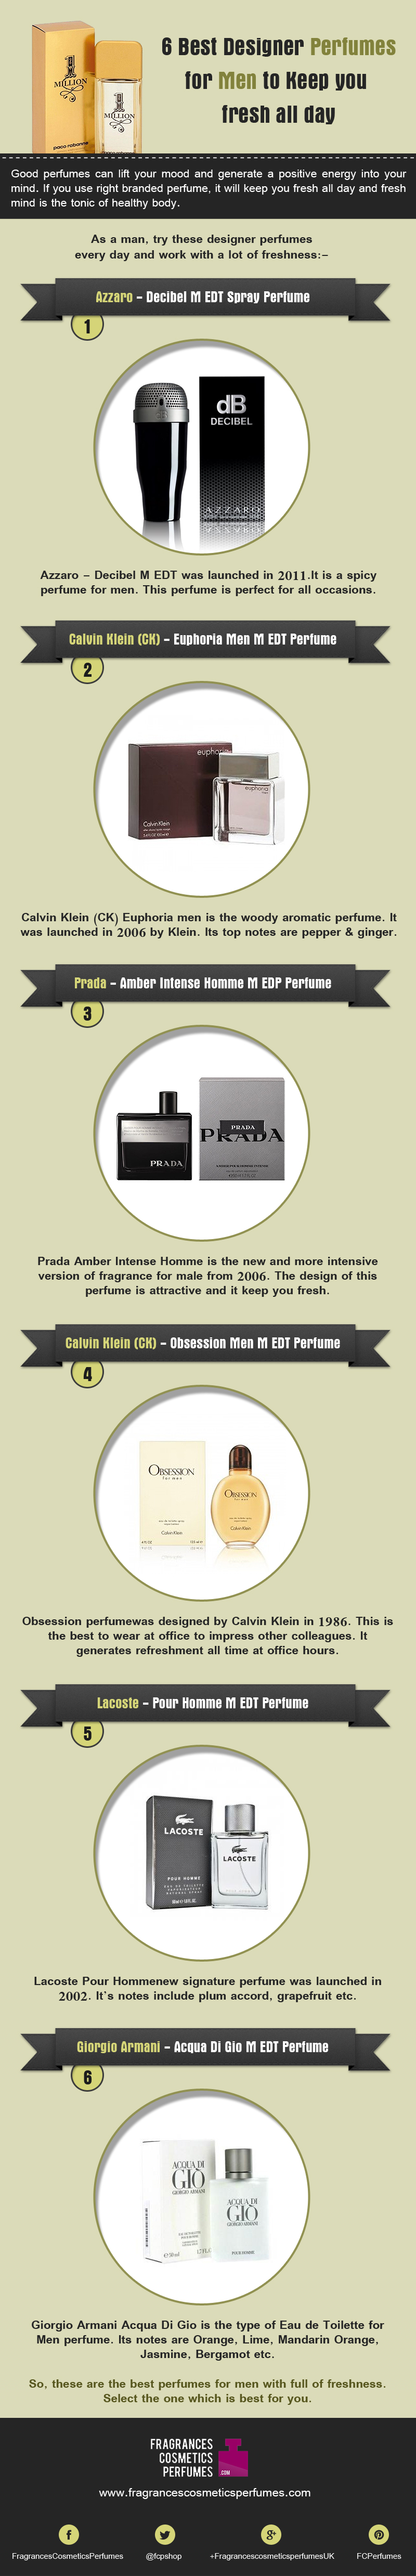 Designer Perfumes for Men [Infographic]